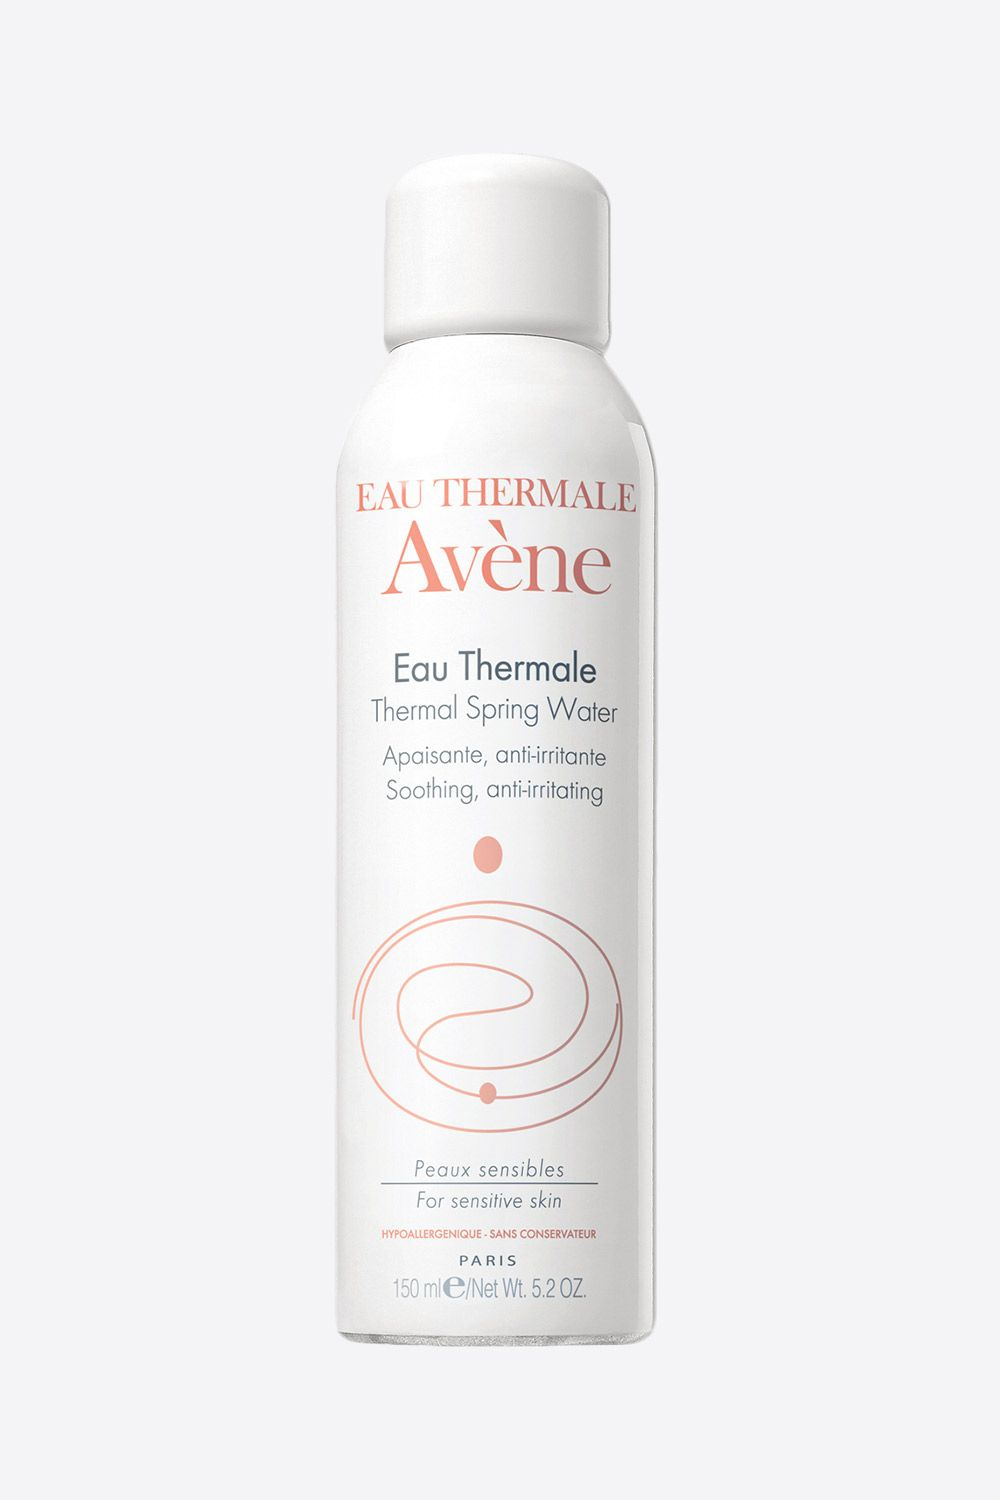 """<p>French women, especially those with sensitive skin, are obsessed with thermal water. This beloved spray is gentle enough for a baby and over 150 studies show that it effectively calms and softens skin. Talk about handbag-real-estate worthy...</p><p>Avène Eau Thermale Spring Water, $9&#x3B; <a href=""""http://www.drugstore.com/products/prod.asp?pid=193767&catid=182950&aid=338666&aparam=193767&kpid=193767&CAWELAID=120142990000013550&CAGPSPN=pla&CAAGID=15436301413&CATCI=pla-112542614653"""" target=""""_blank"""">drugstore.com</a>.</p>"""